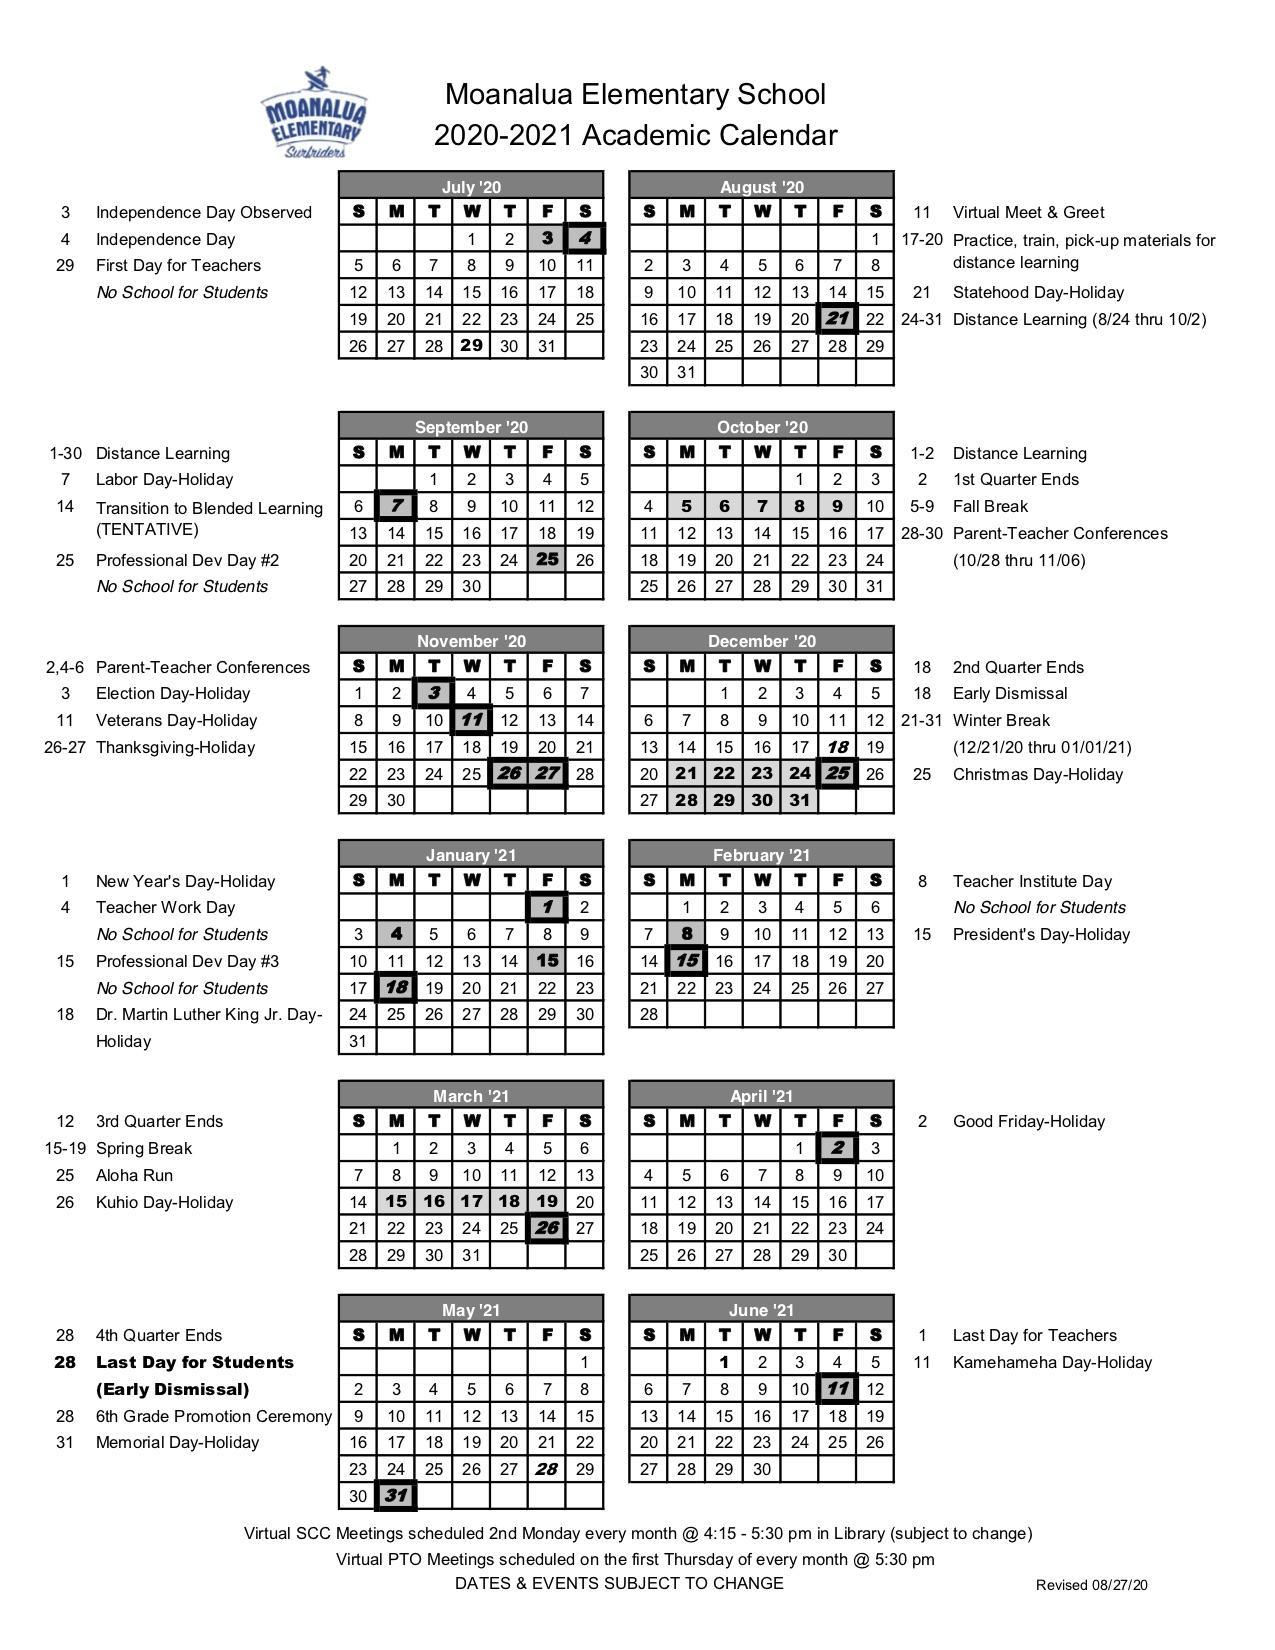 Academic calendar School Year 2020-2021